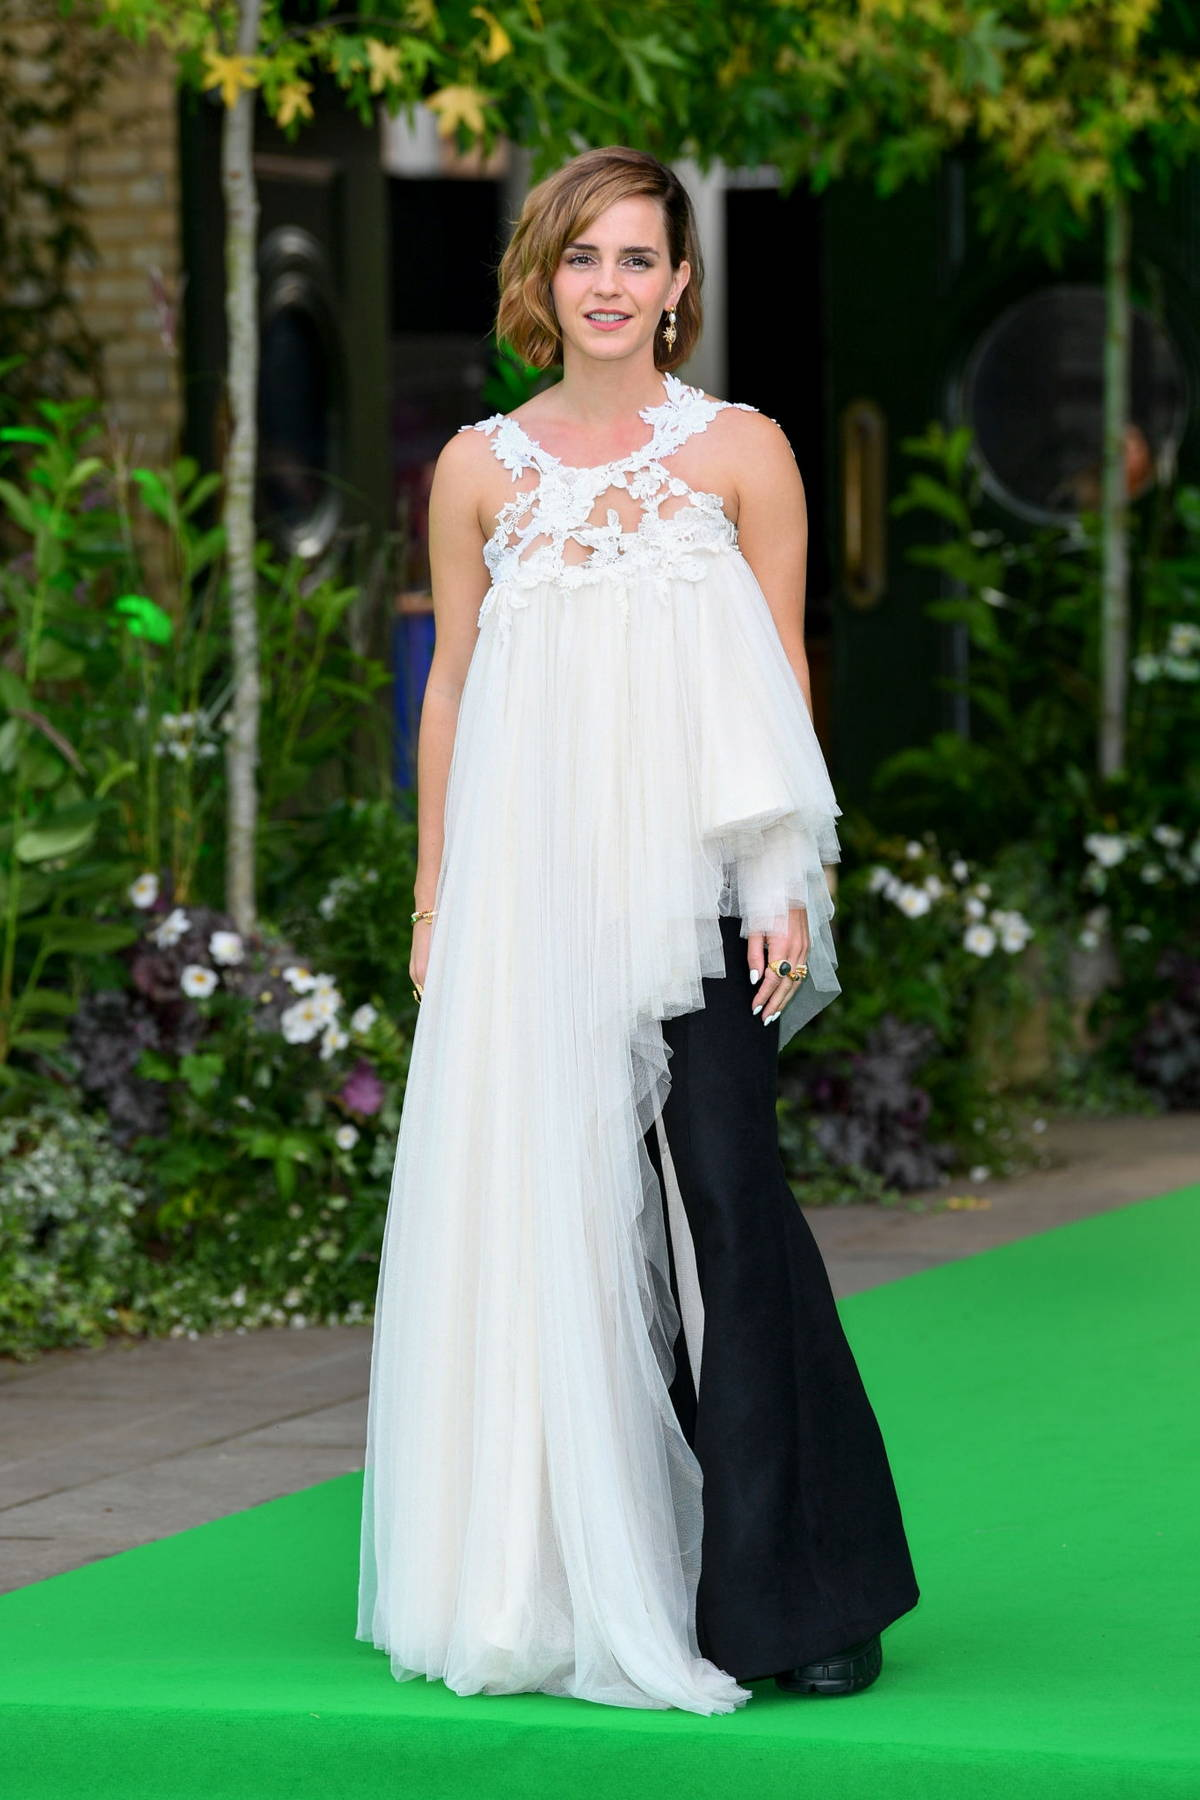 Emma Watson attends the 2021 Earthshot Prize Awards Ceremony at Alexandra Palace in London, UK